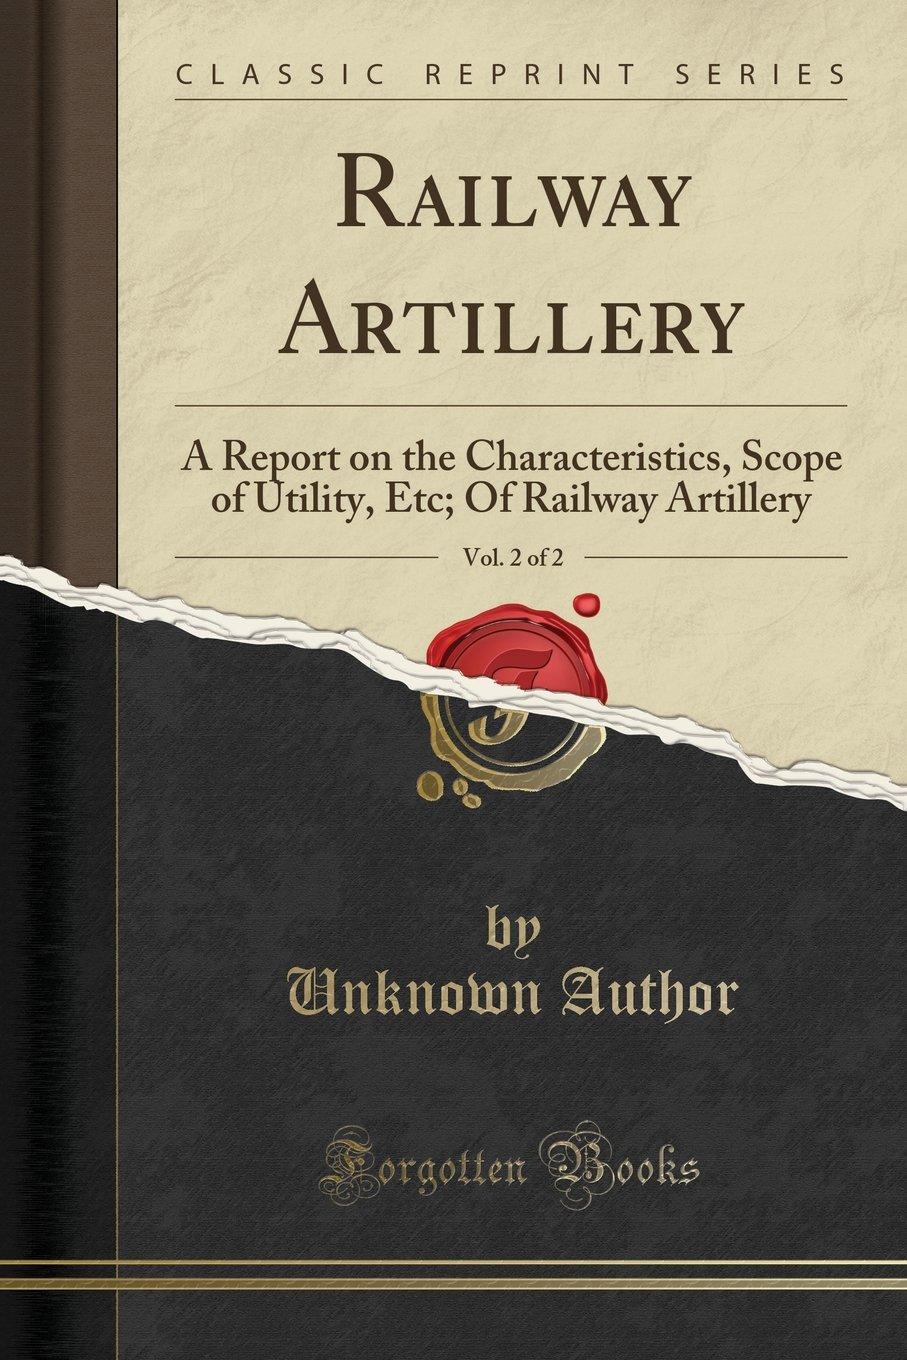 Railway Artillery, Vol. 2 of 2: A Report on the Characteristics, Scope of Utility, Etc; Of Railway Artillery (Classic Reprint) PDF